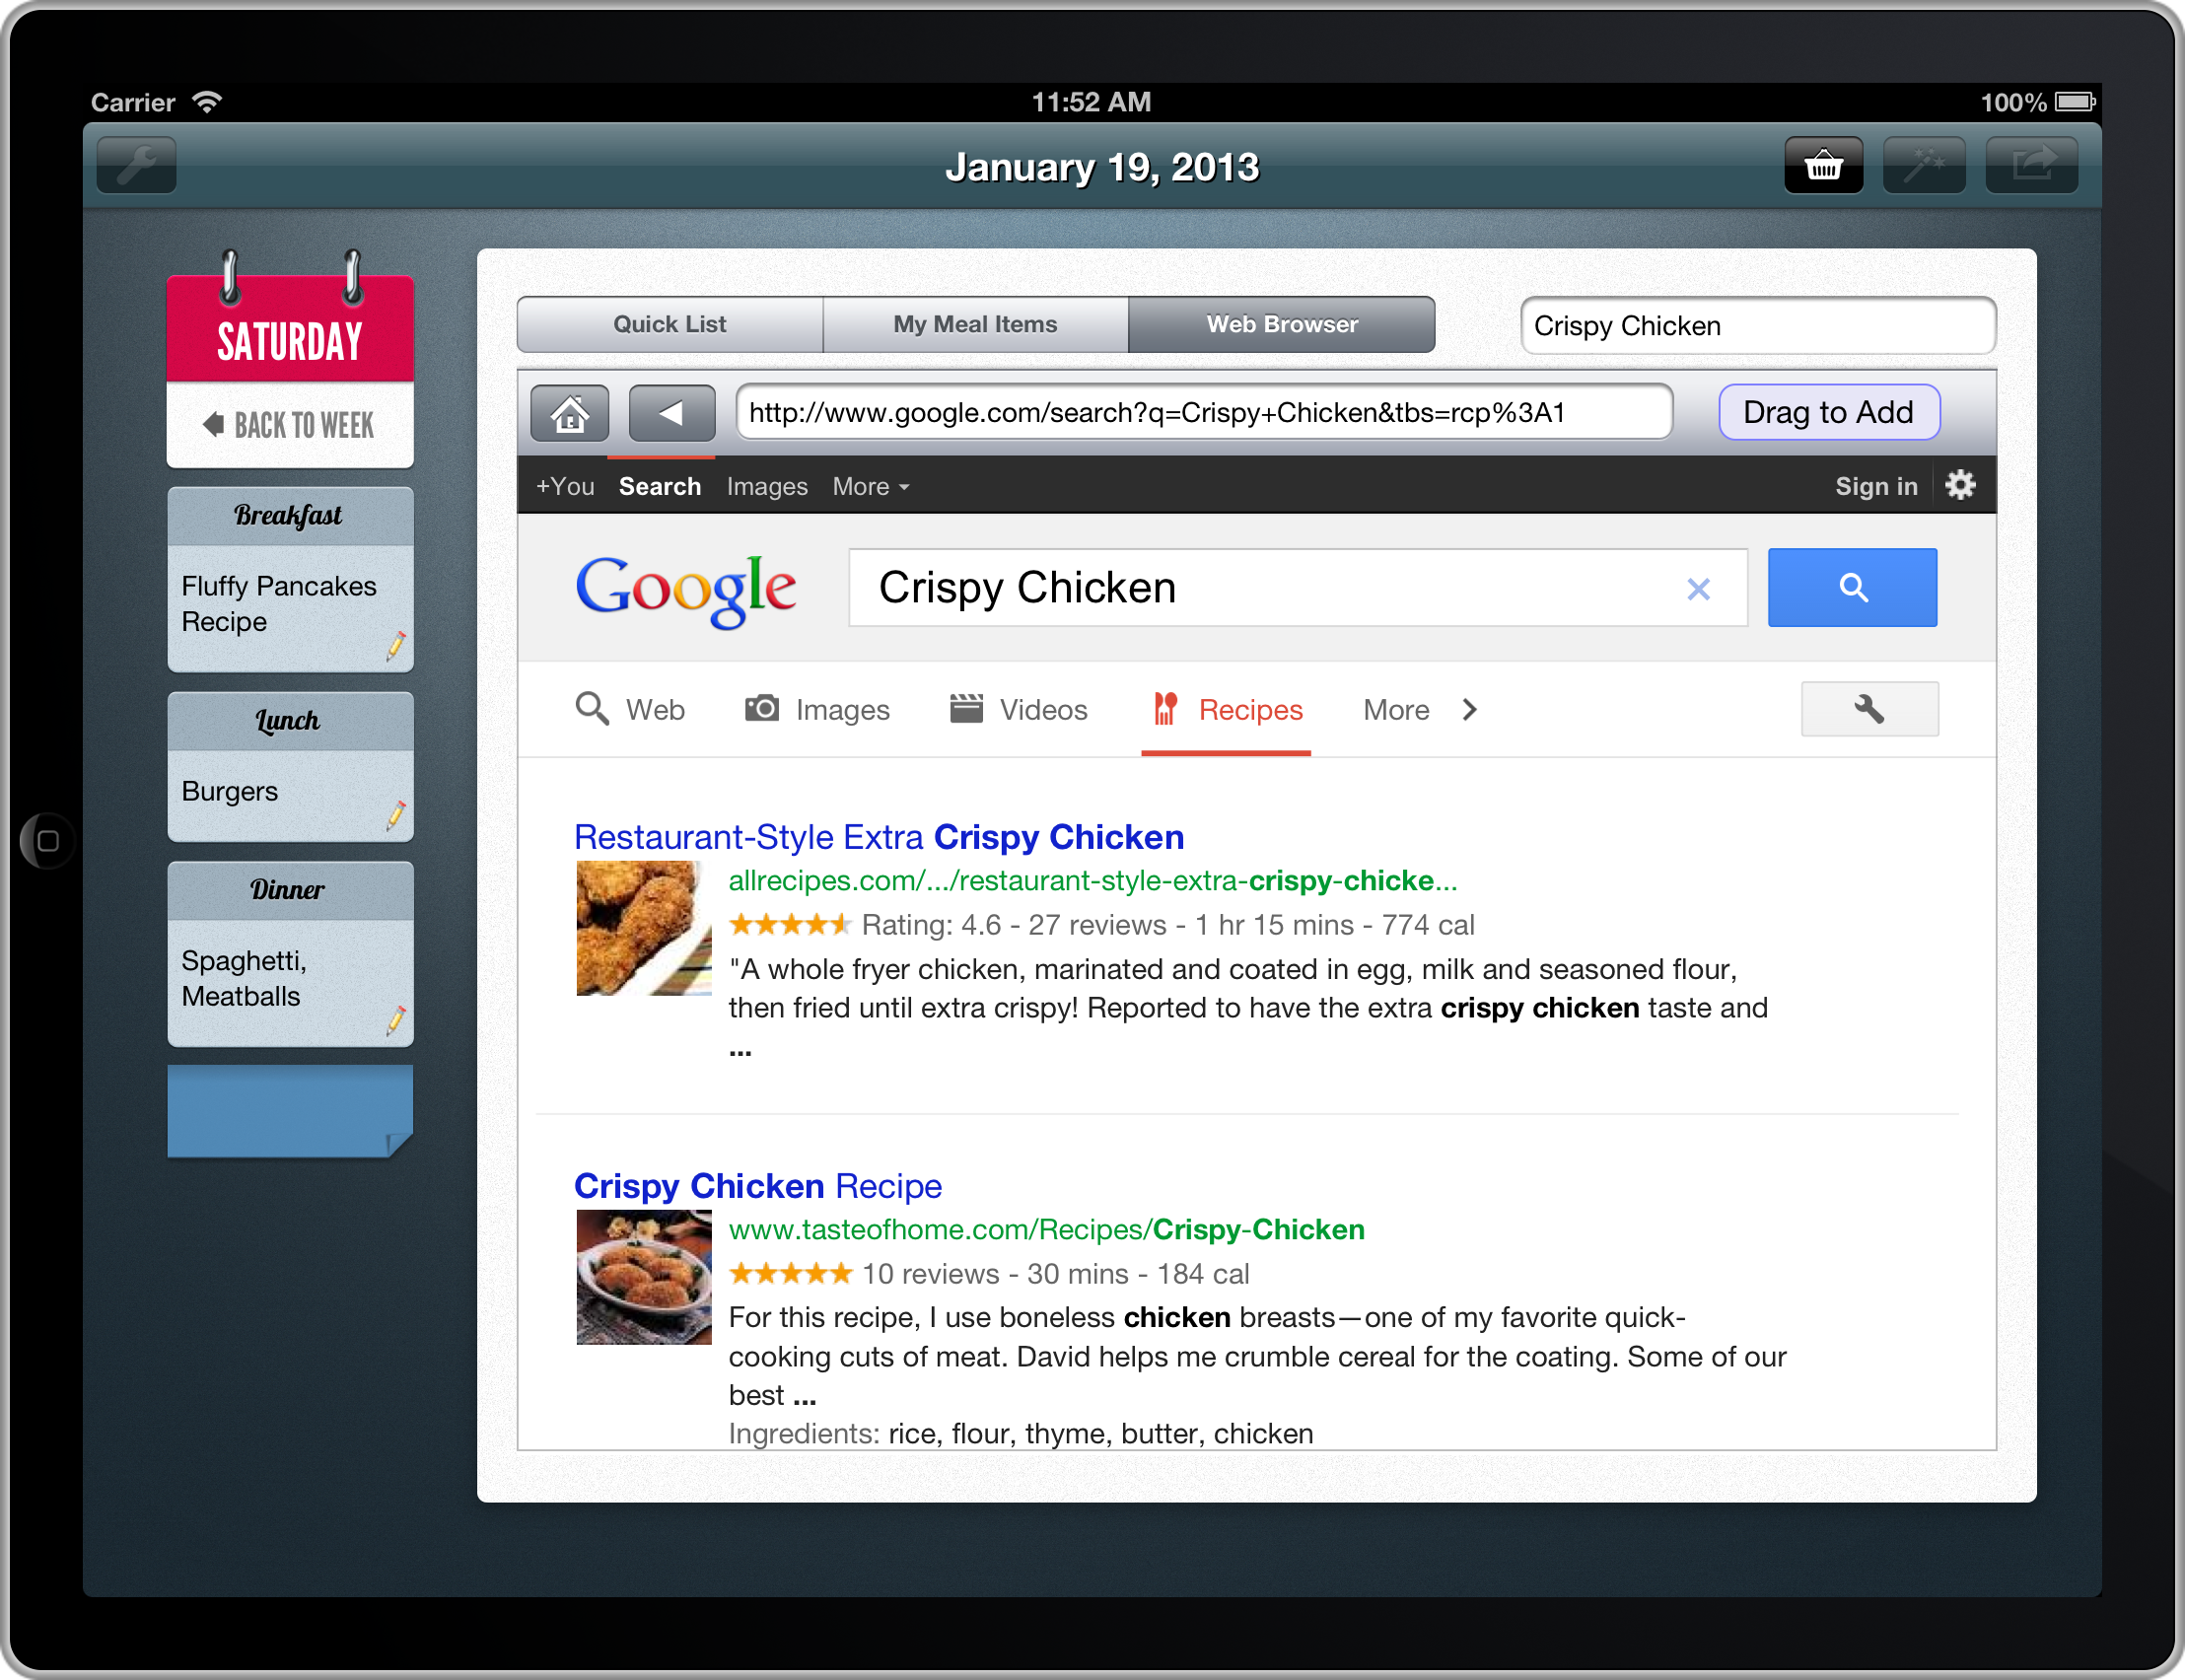 meal-browser.png